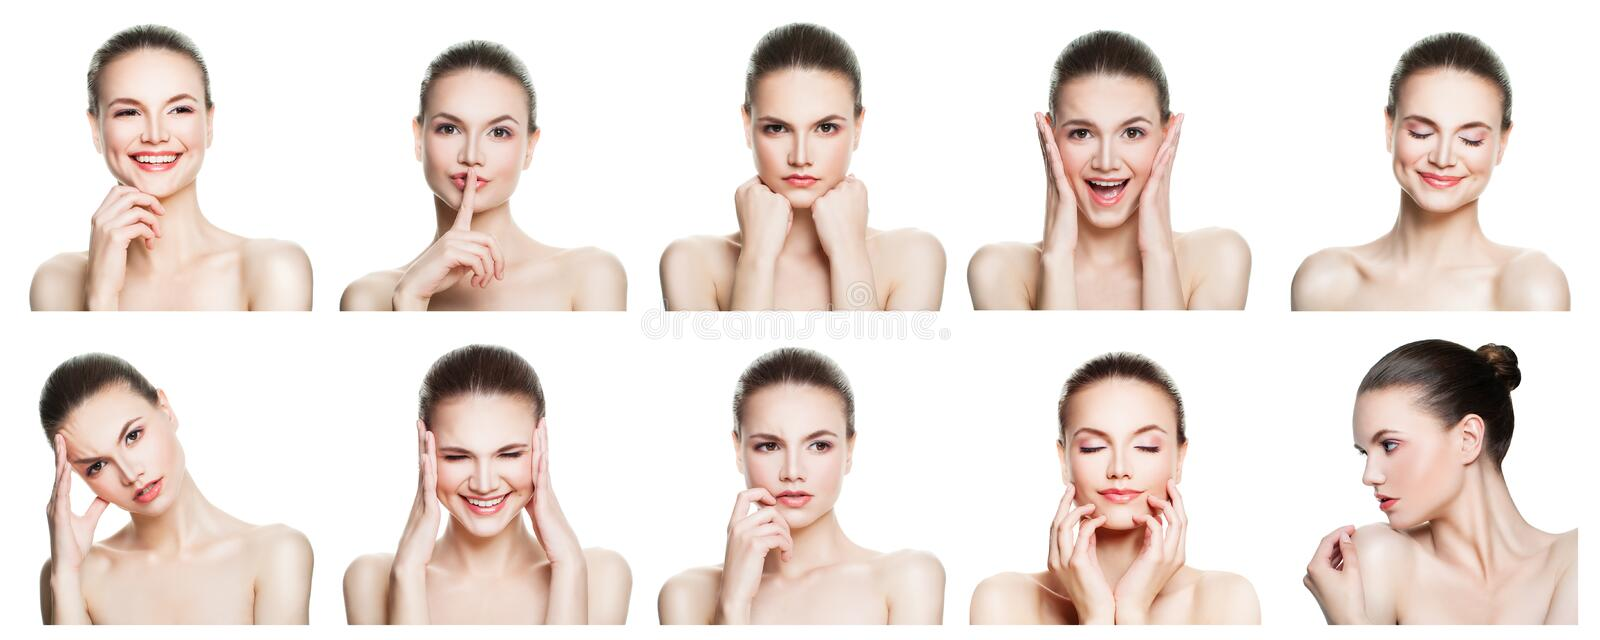 Collage des expressions femelles négatives et positives de visage photographie stock libre de droits